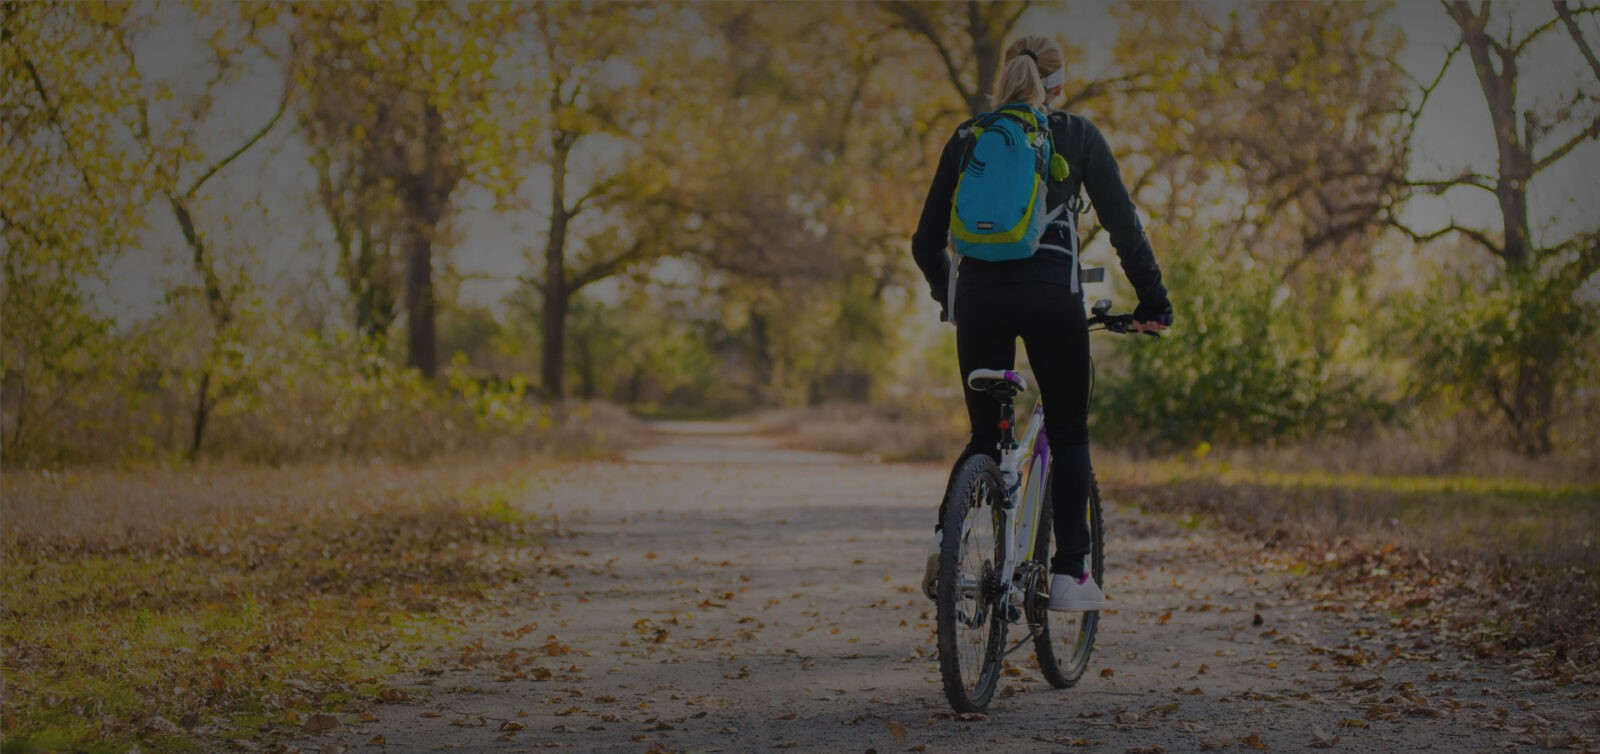 Bike the Preserves with HOPR Bike Share in the Forest Preserves of Cook County